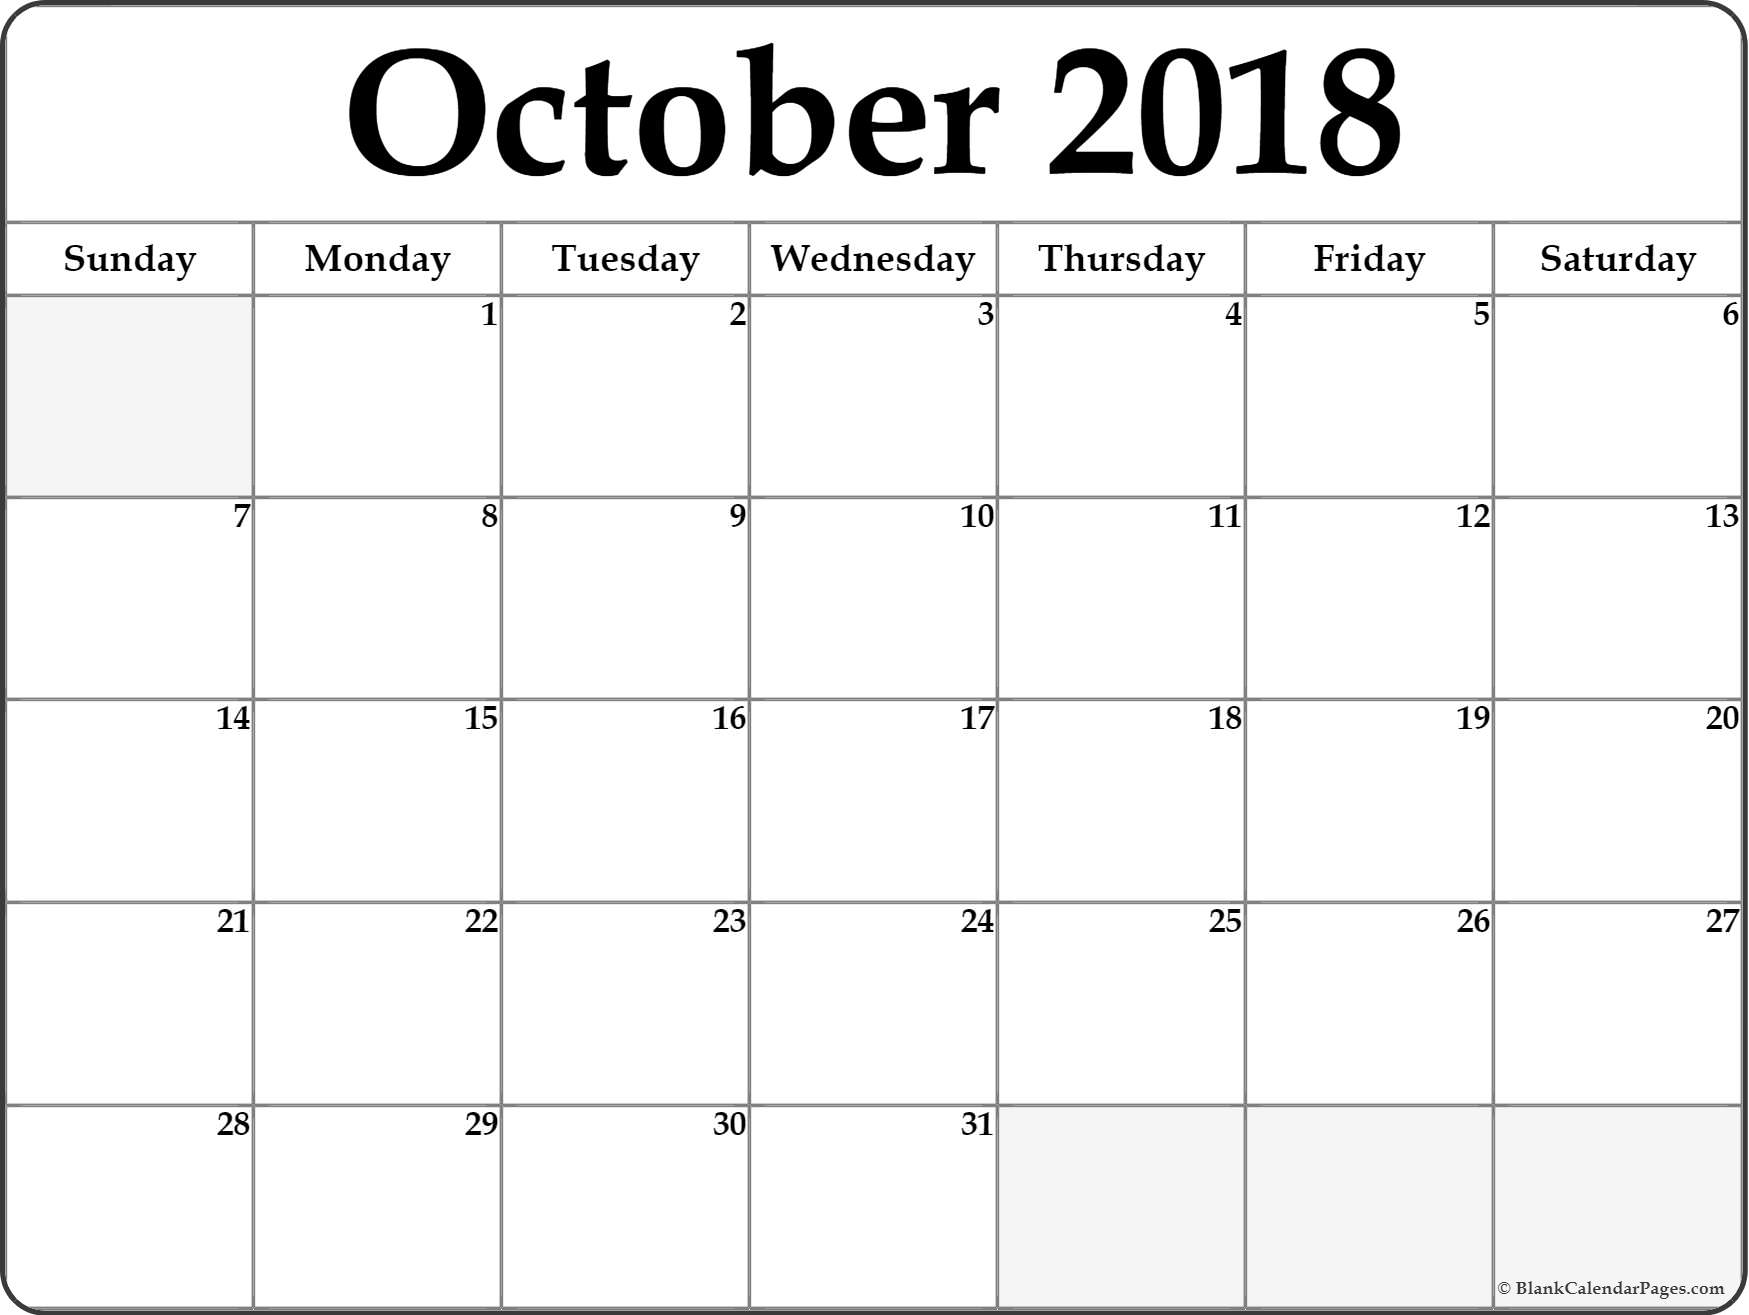 October 2018 Calendar Philippines